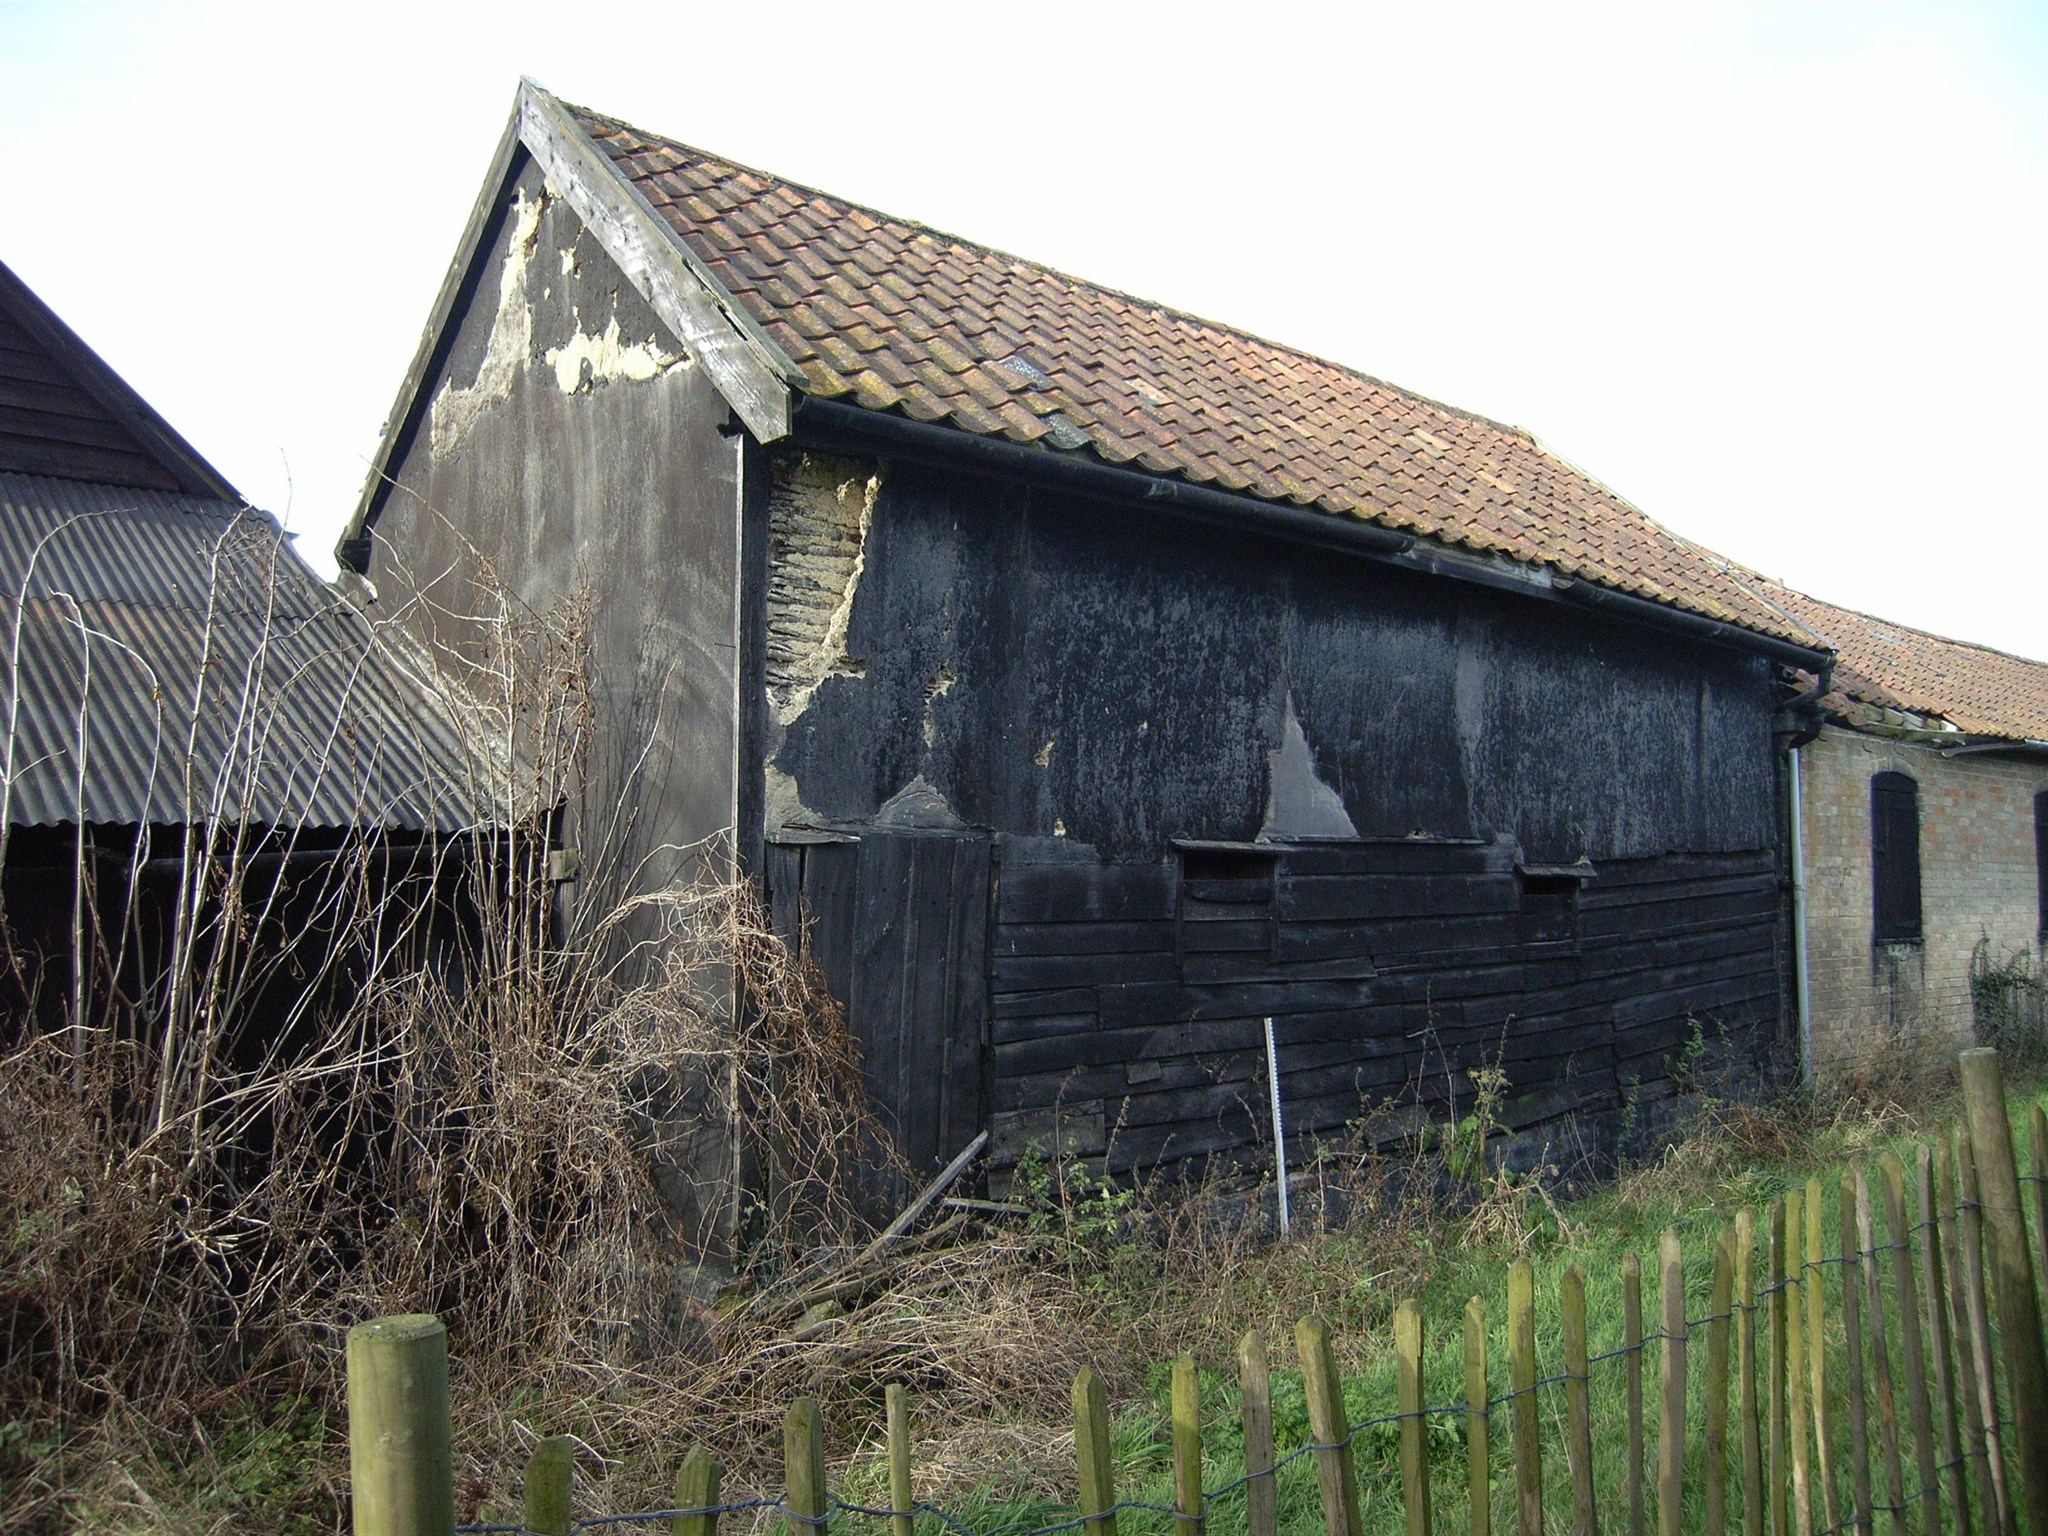 Exterior of the South Barn, Lodge Farm, Wyverstone, Suffolk